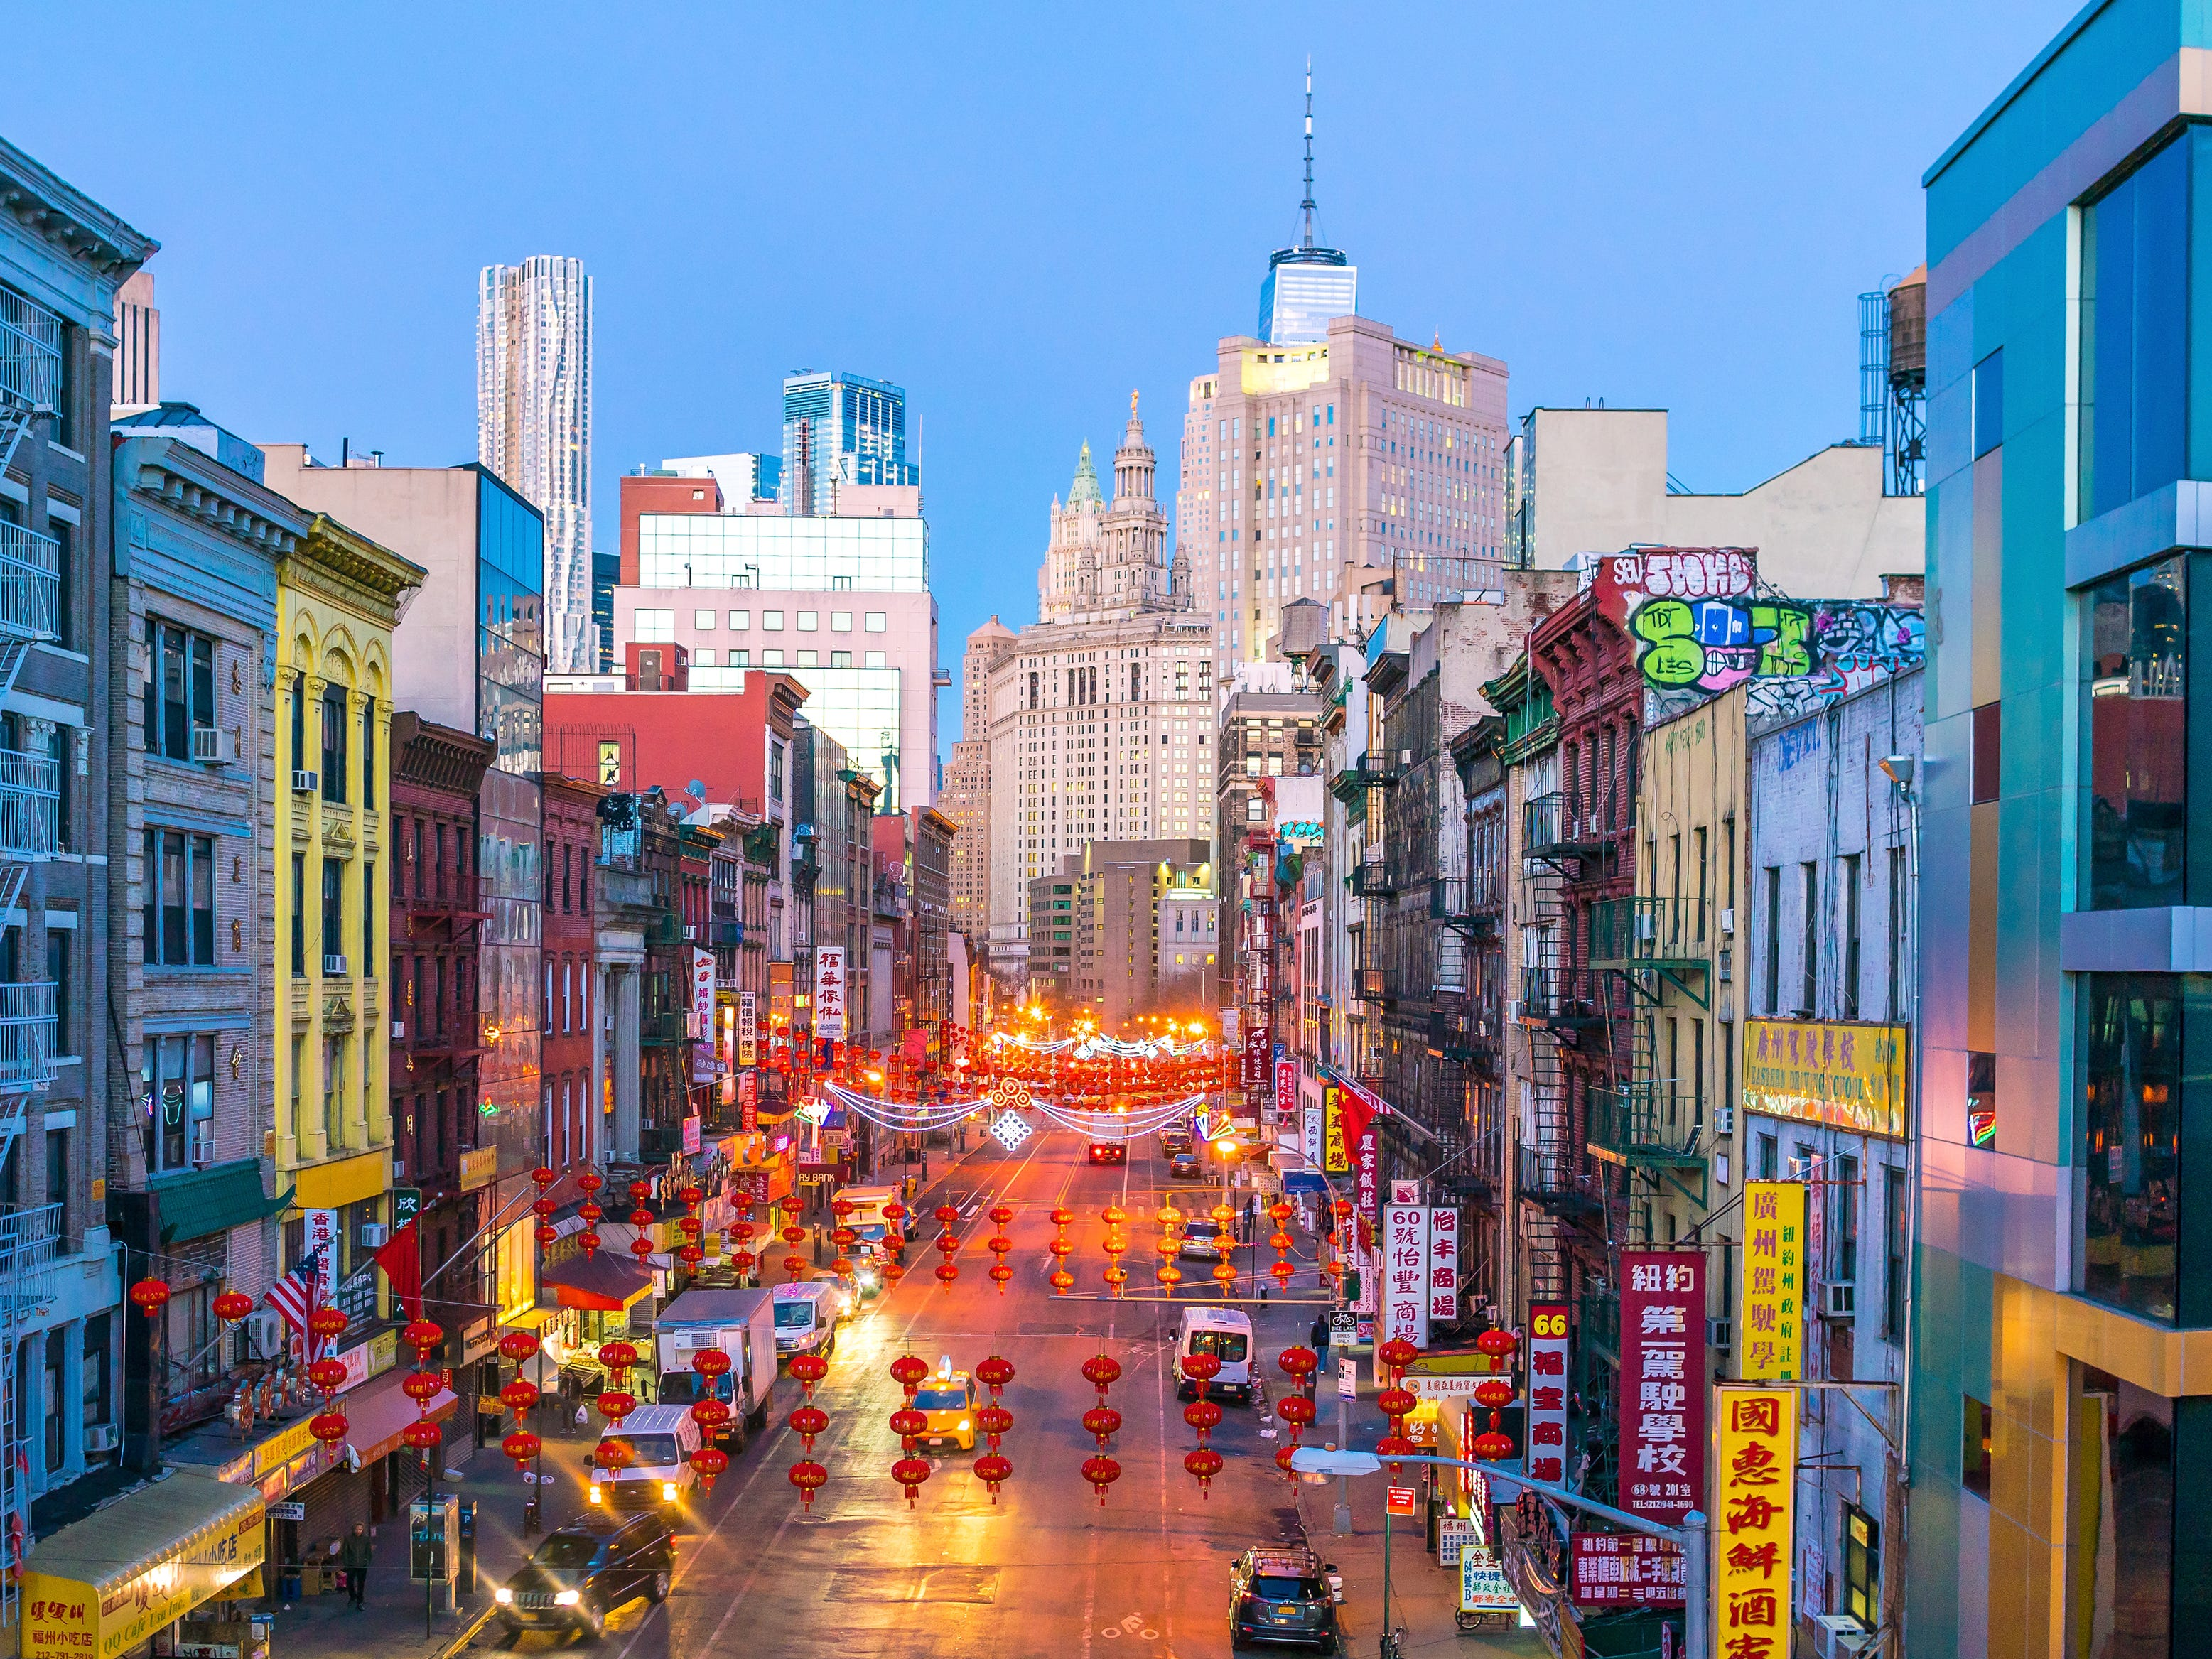 No. 41: Chinatown in New York City.